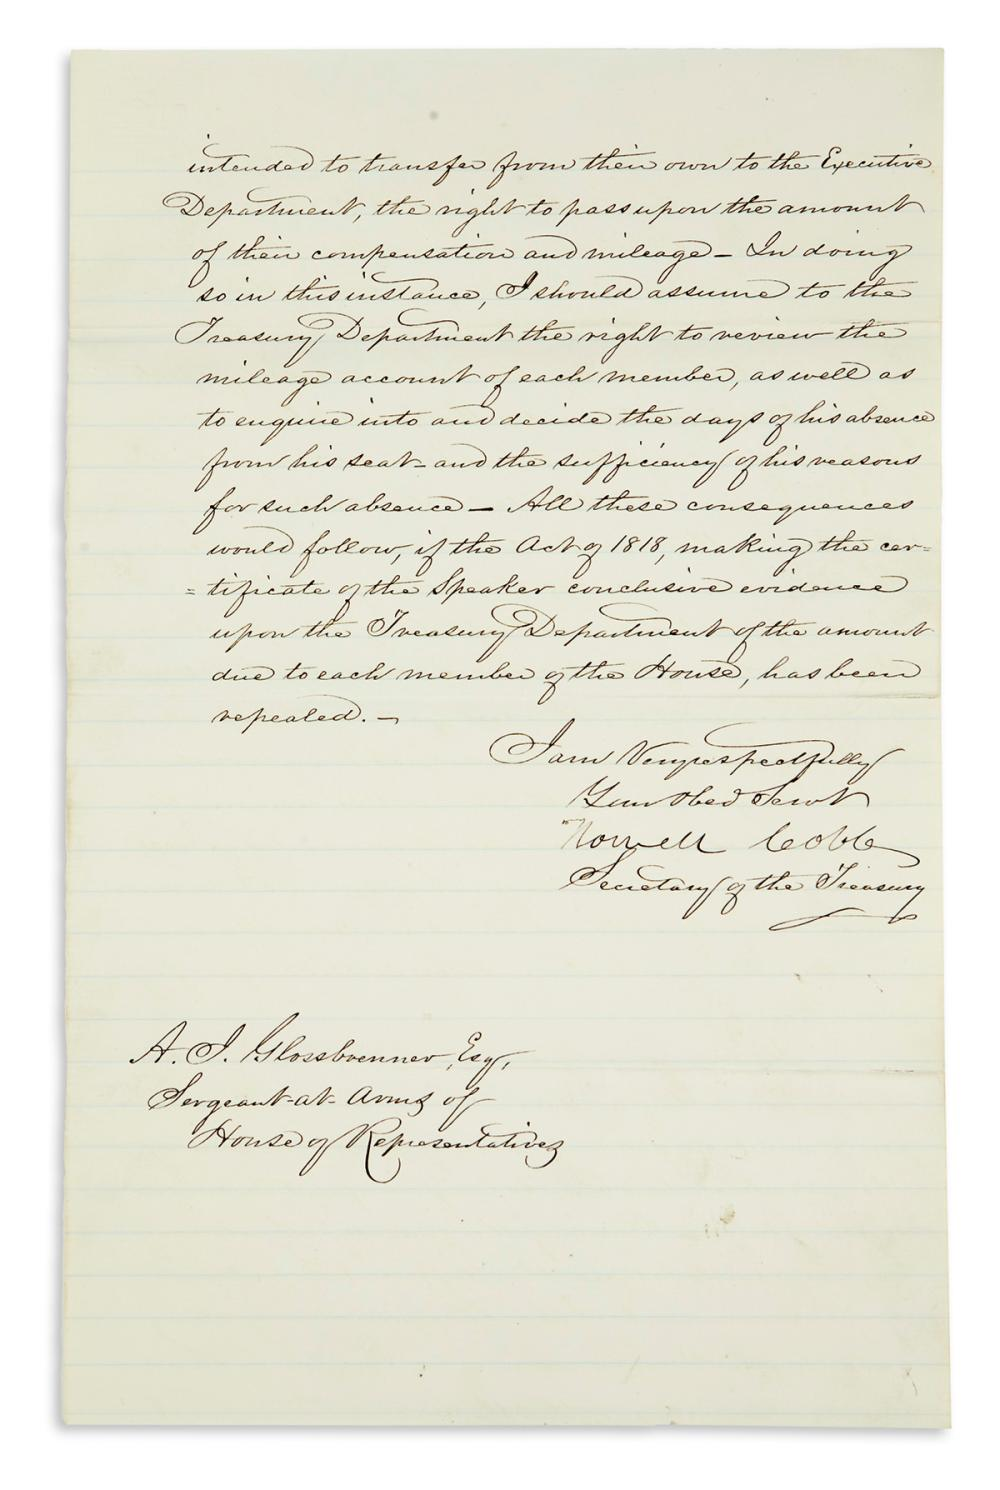 COBB, HOWELL. Letter Signed, as Secretary of the Treasury, to Sergeant at Arms of the House Adam John Glossbrenner,